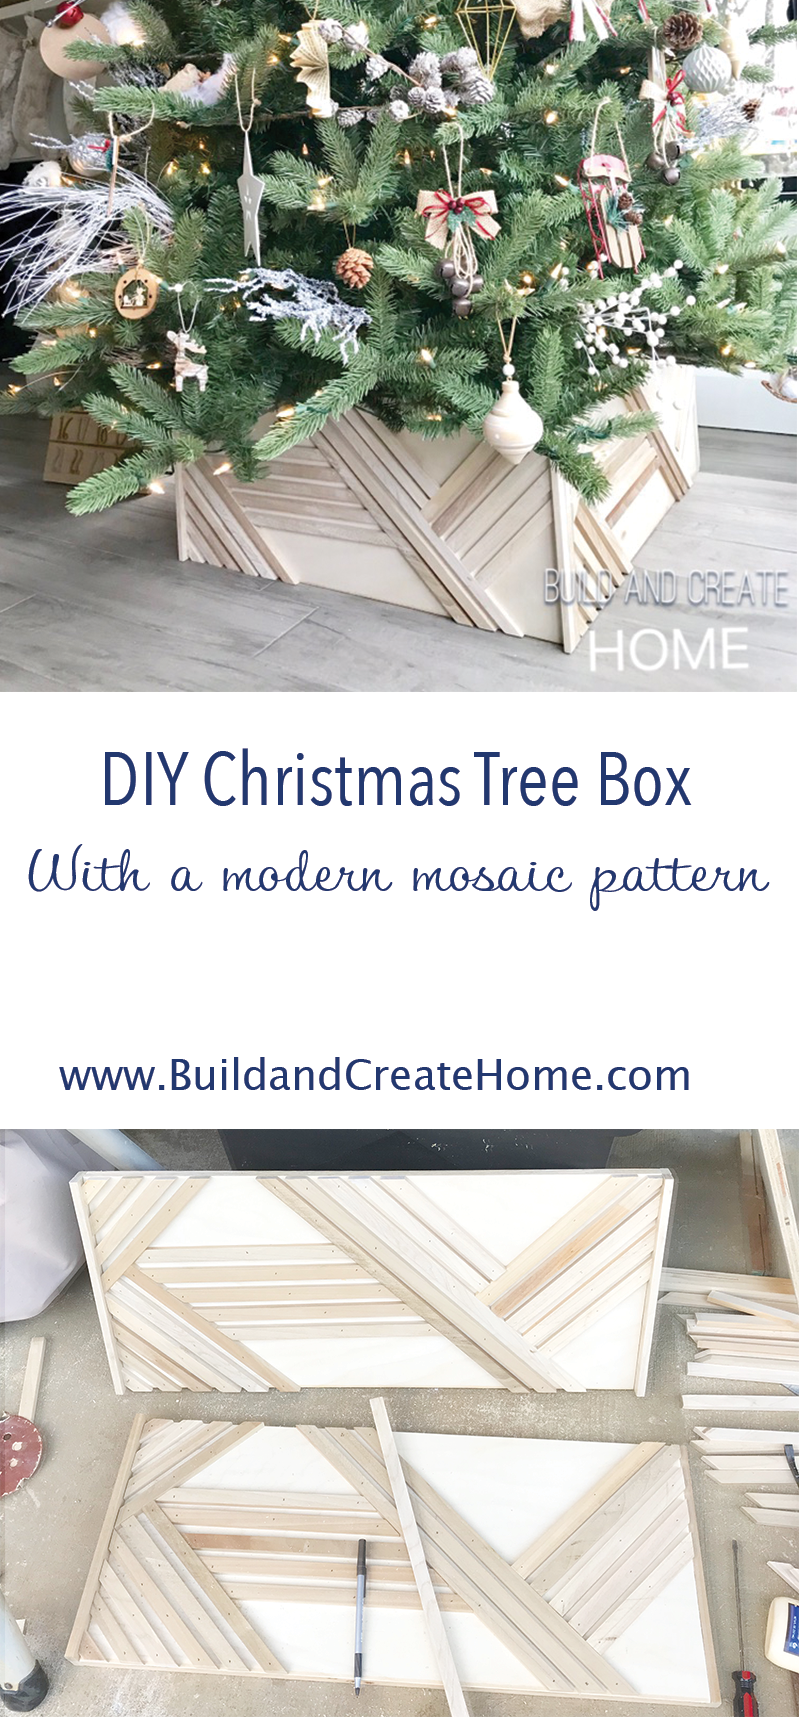 How To Build A Modern Mosaic Christmas Tree Box Diy Tutorial Woodworking Christmastreebox Christmas Tree Box Stand Christmas Tree Box Boho Christmas Tree